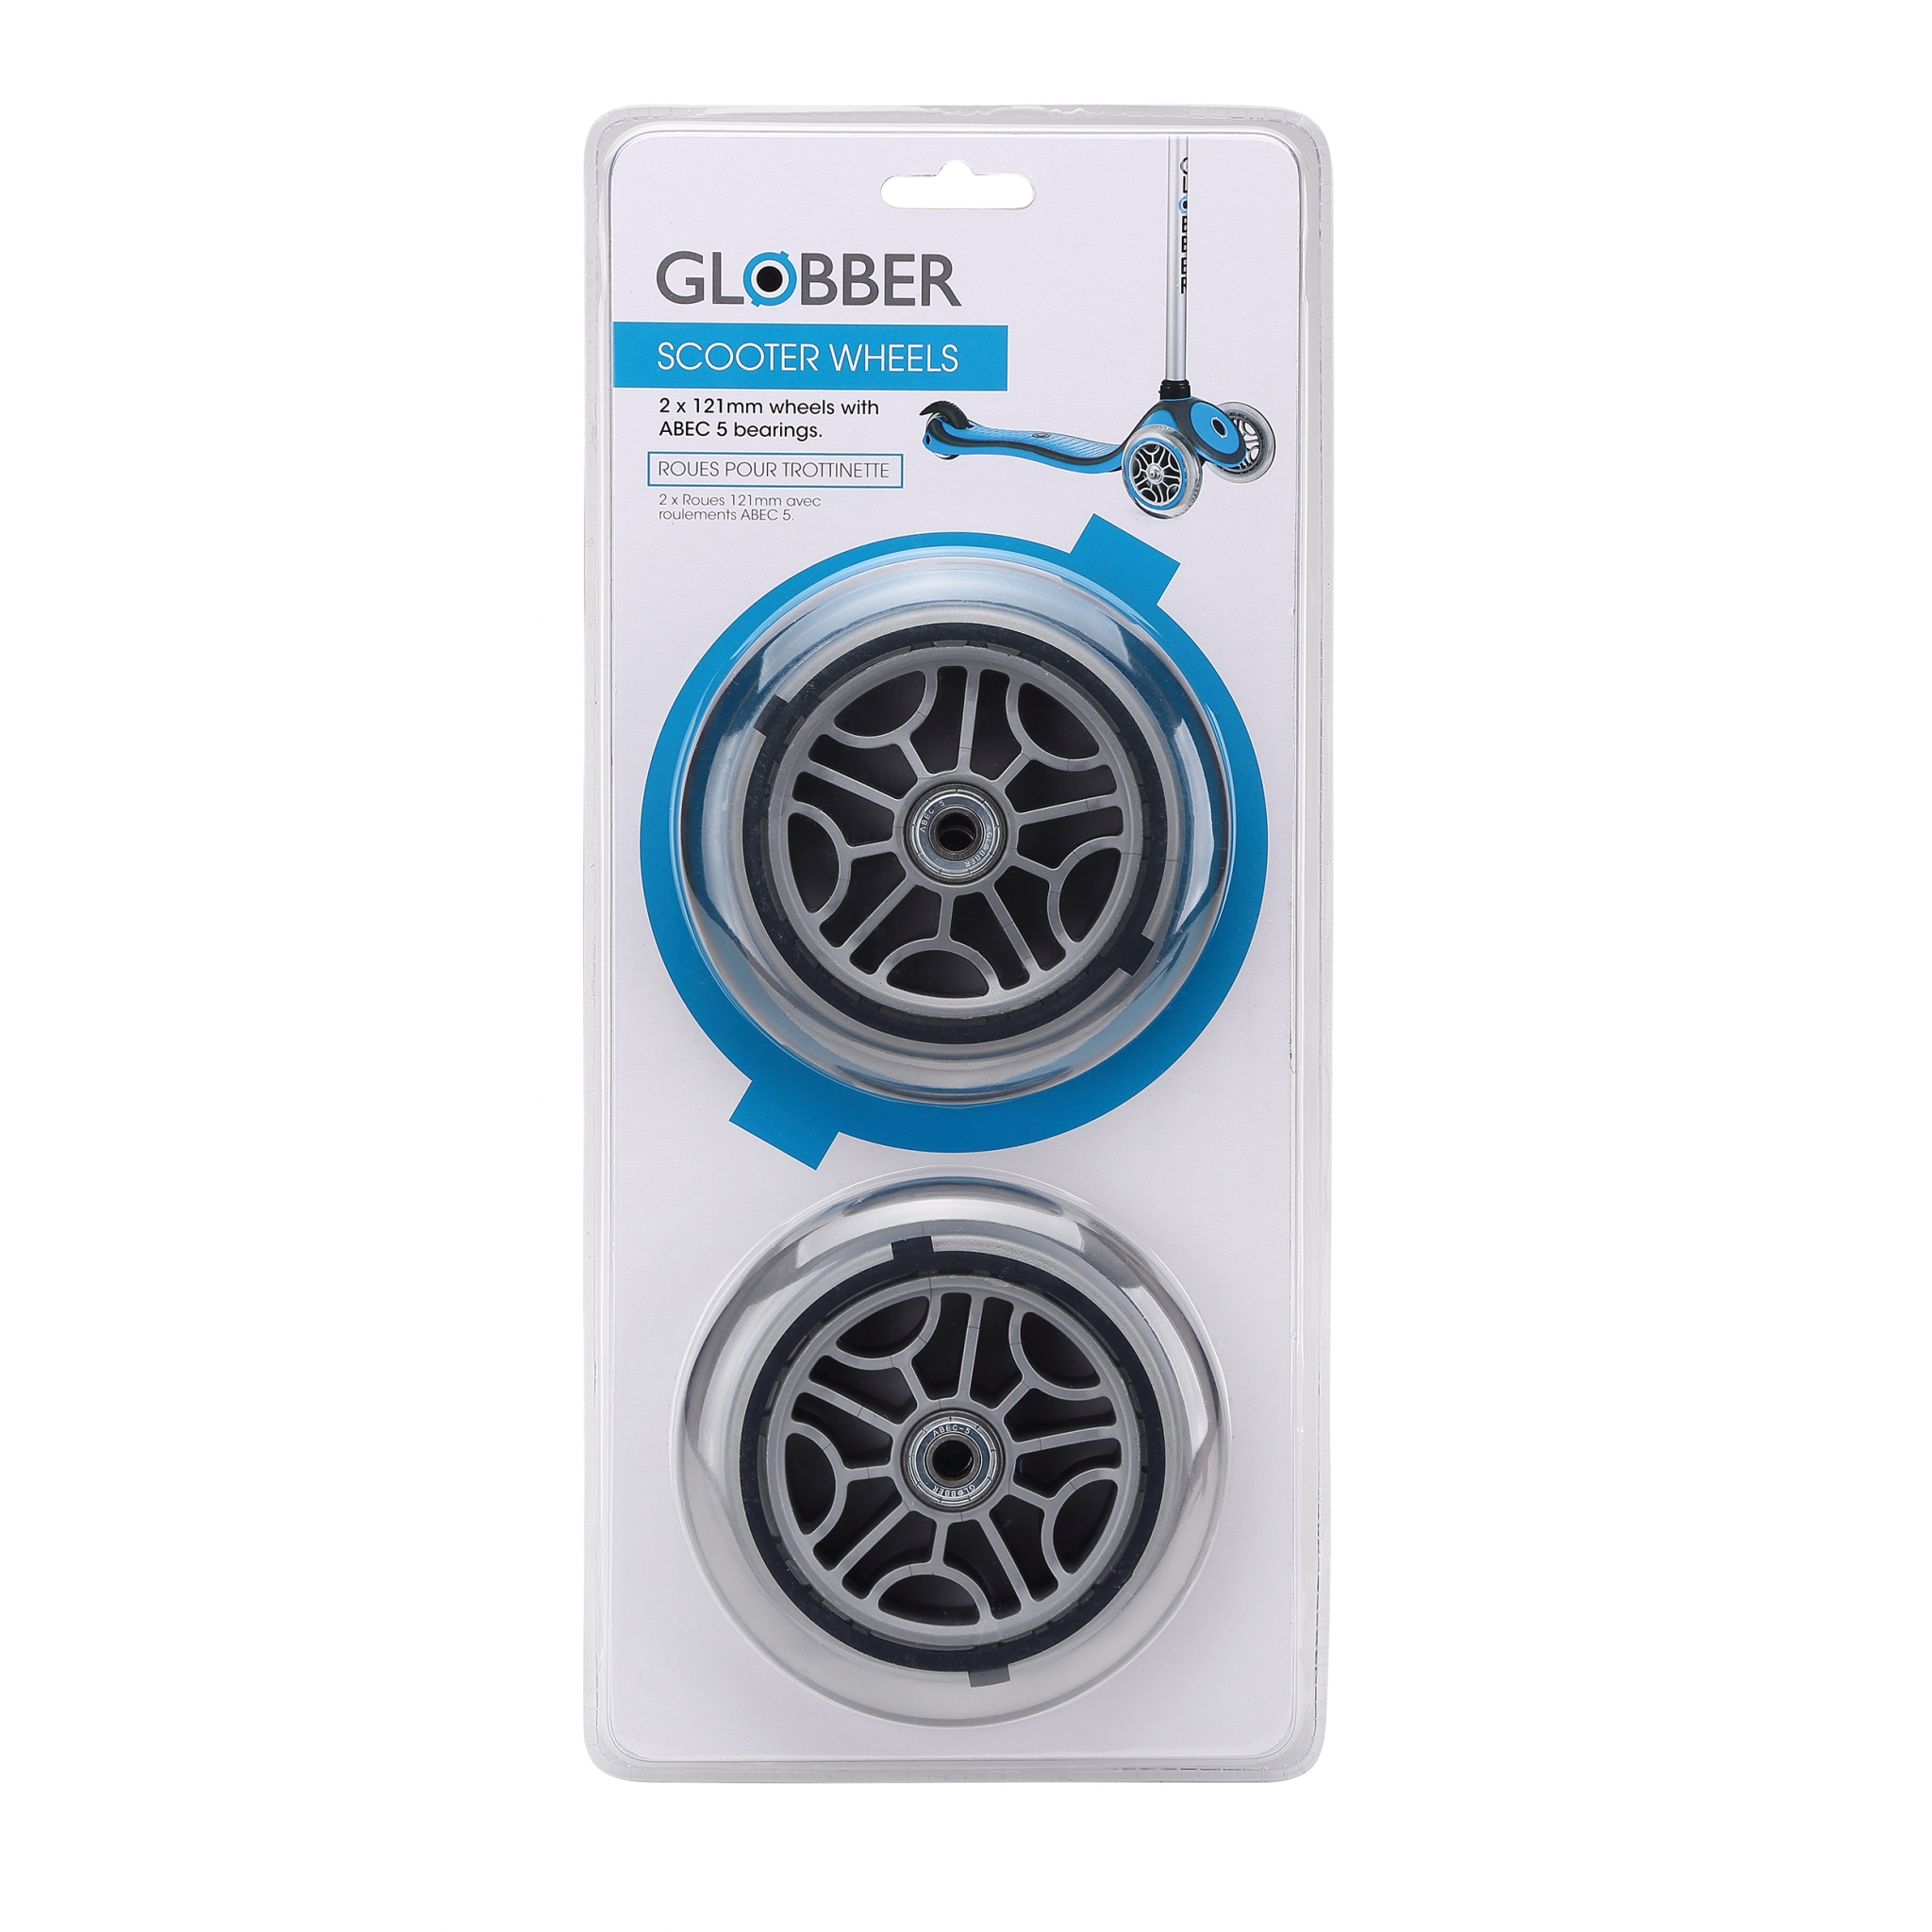 scooter front wheel for Globber GO-UP, PRIMO and FLOW scooters 0